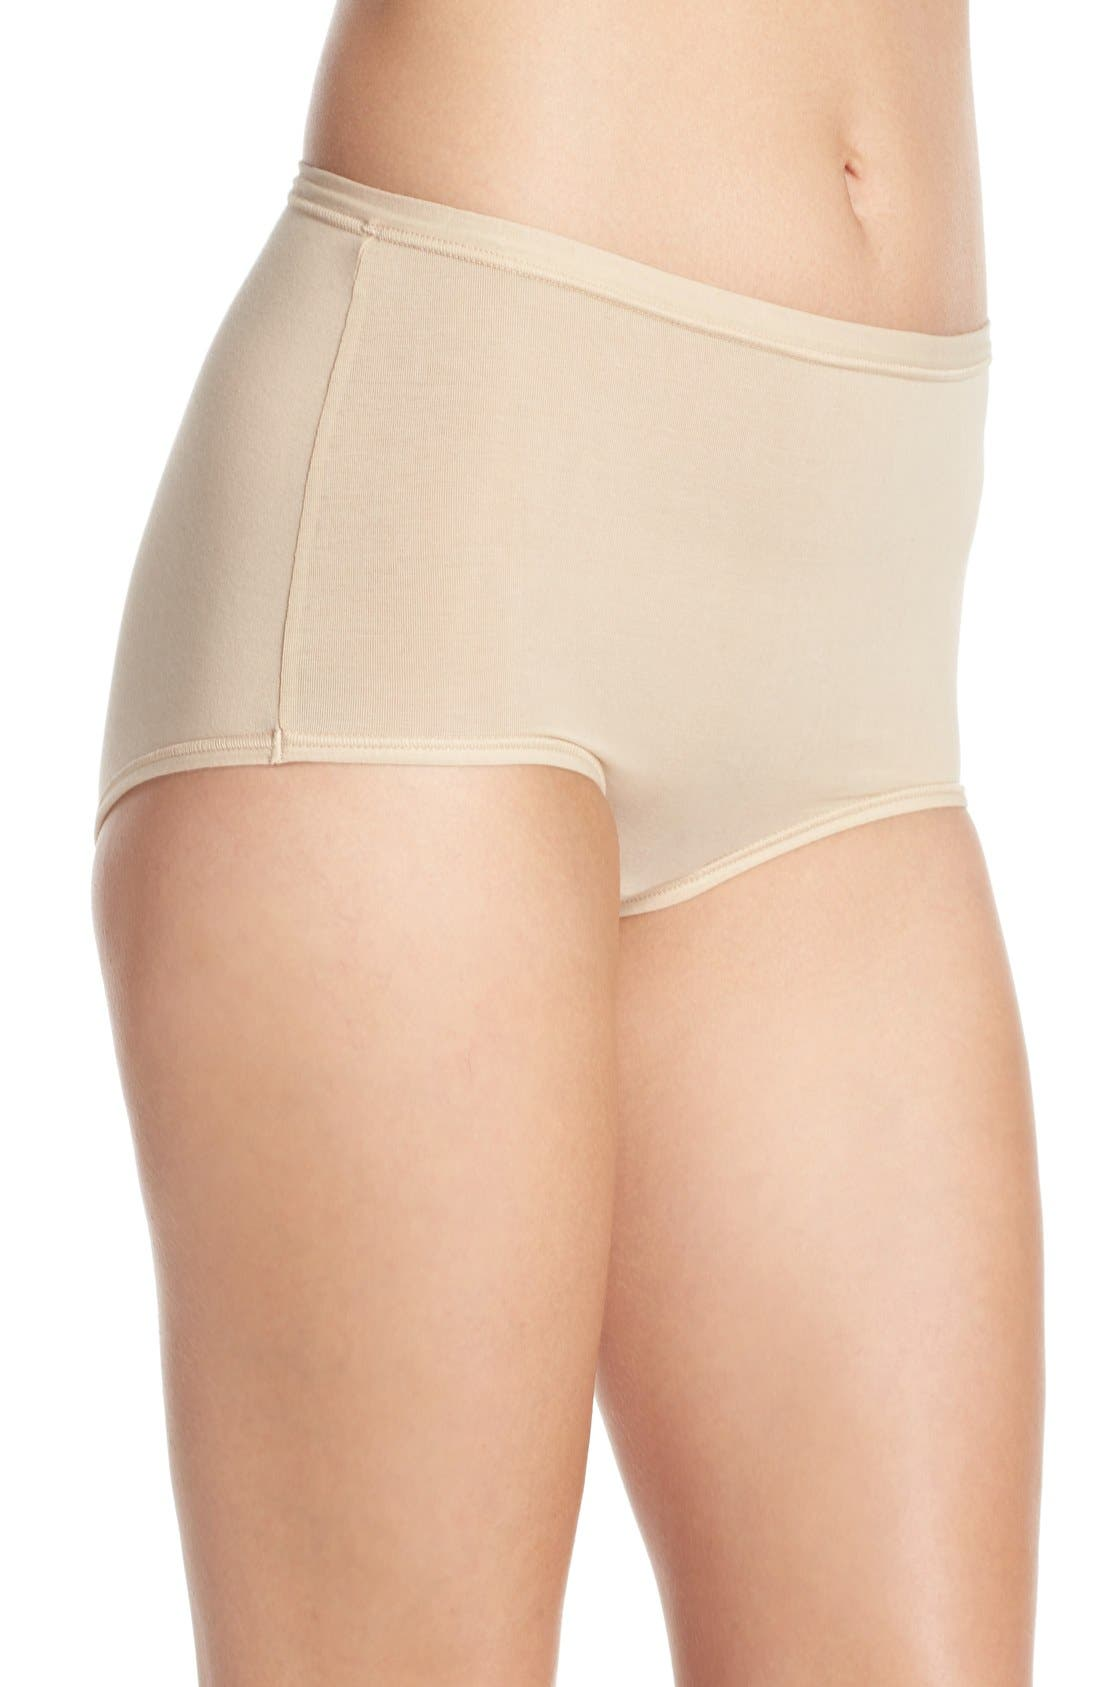 Alternate Image 3  - Wacoal B Fitting Briefs (3 for $28)